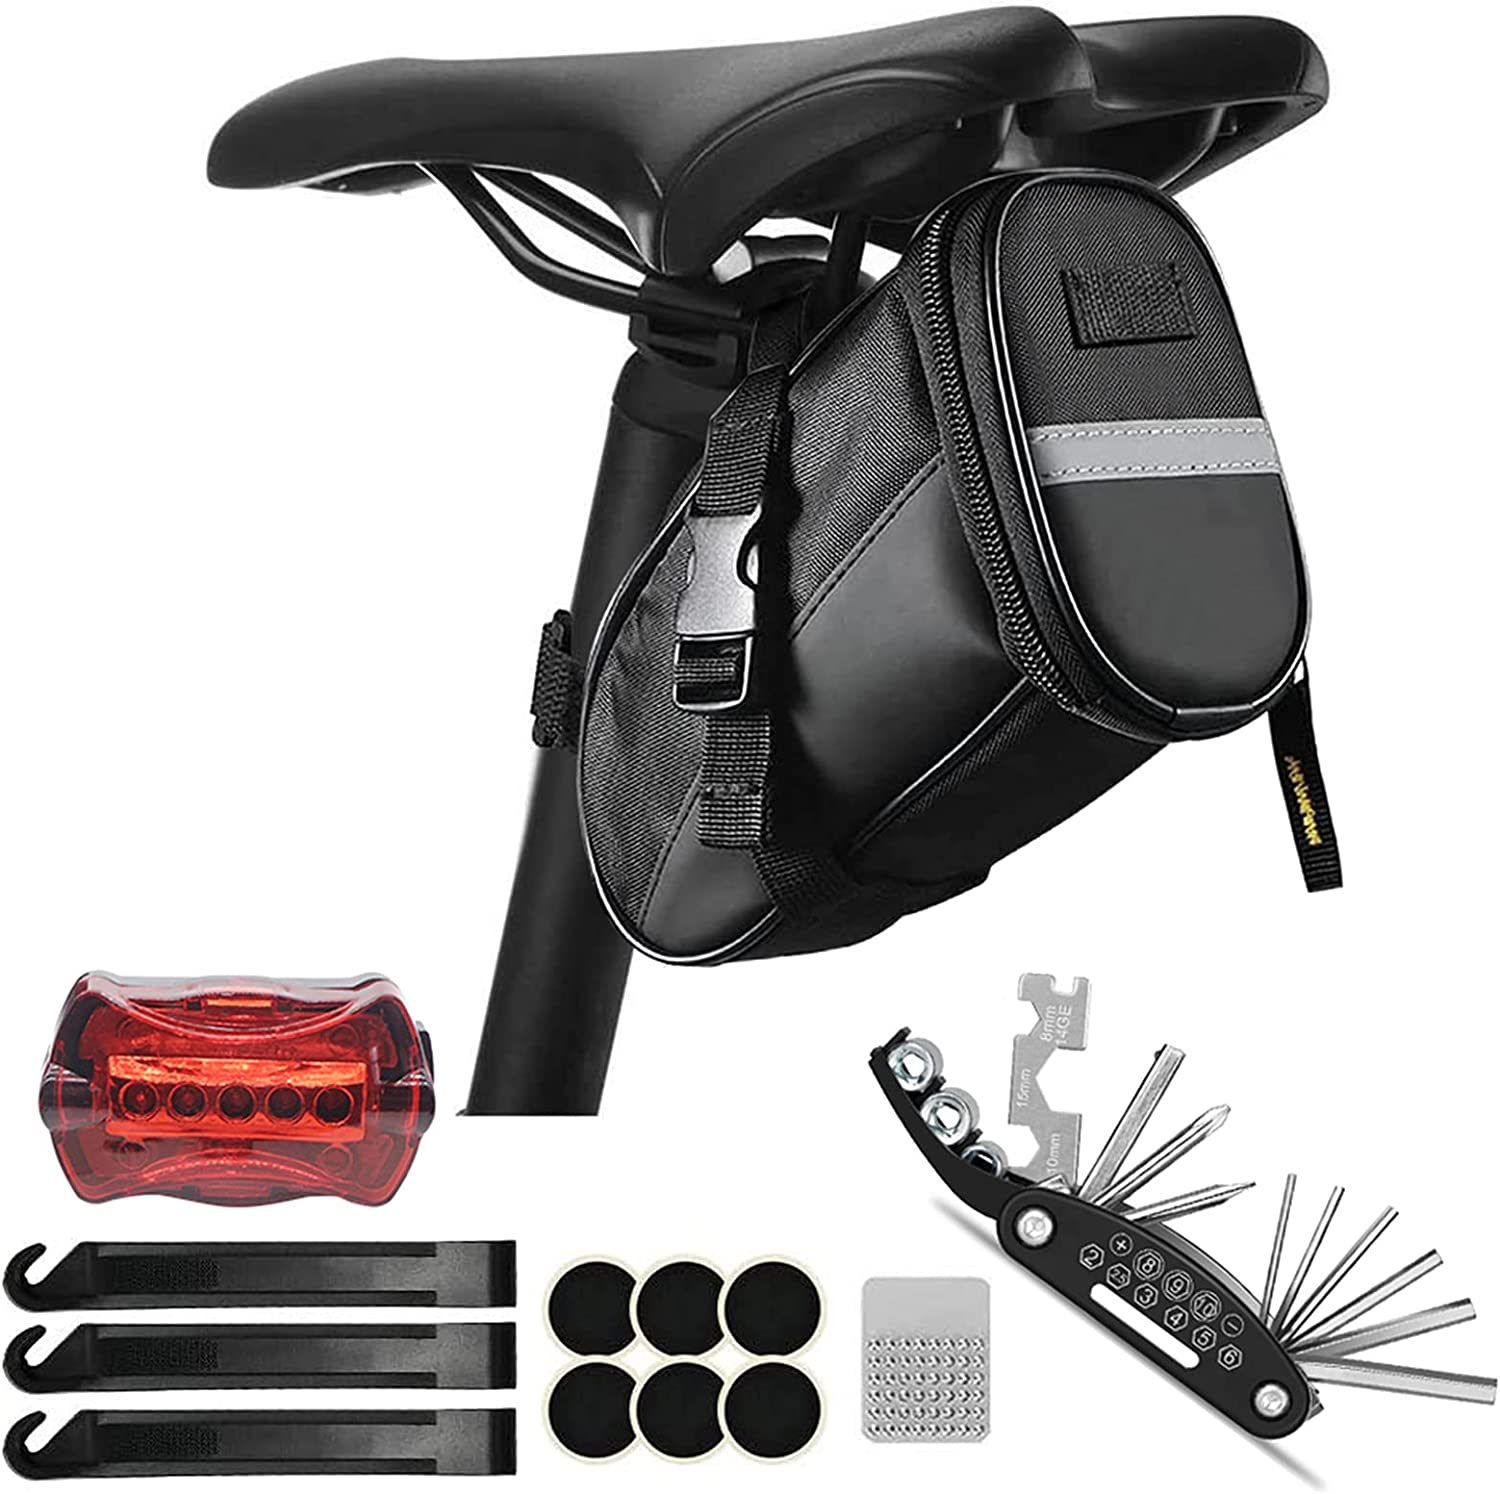 GUAMEE Bicycle Multi-Function New sales 16-in-1 Tool Repair Super beauty product restock quality top